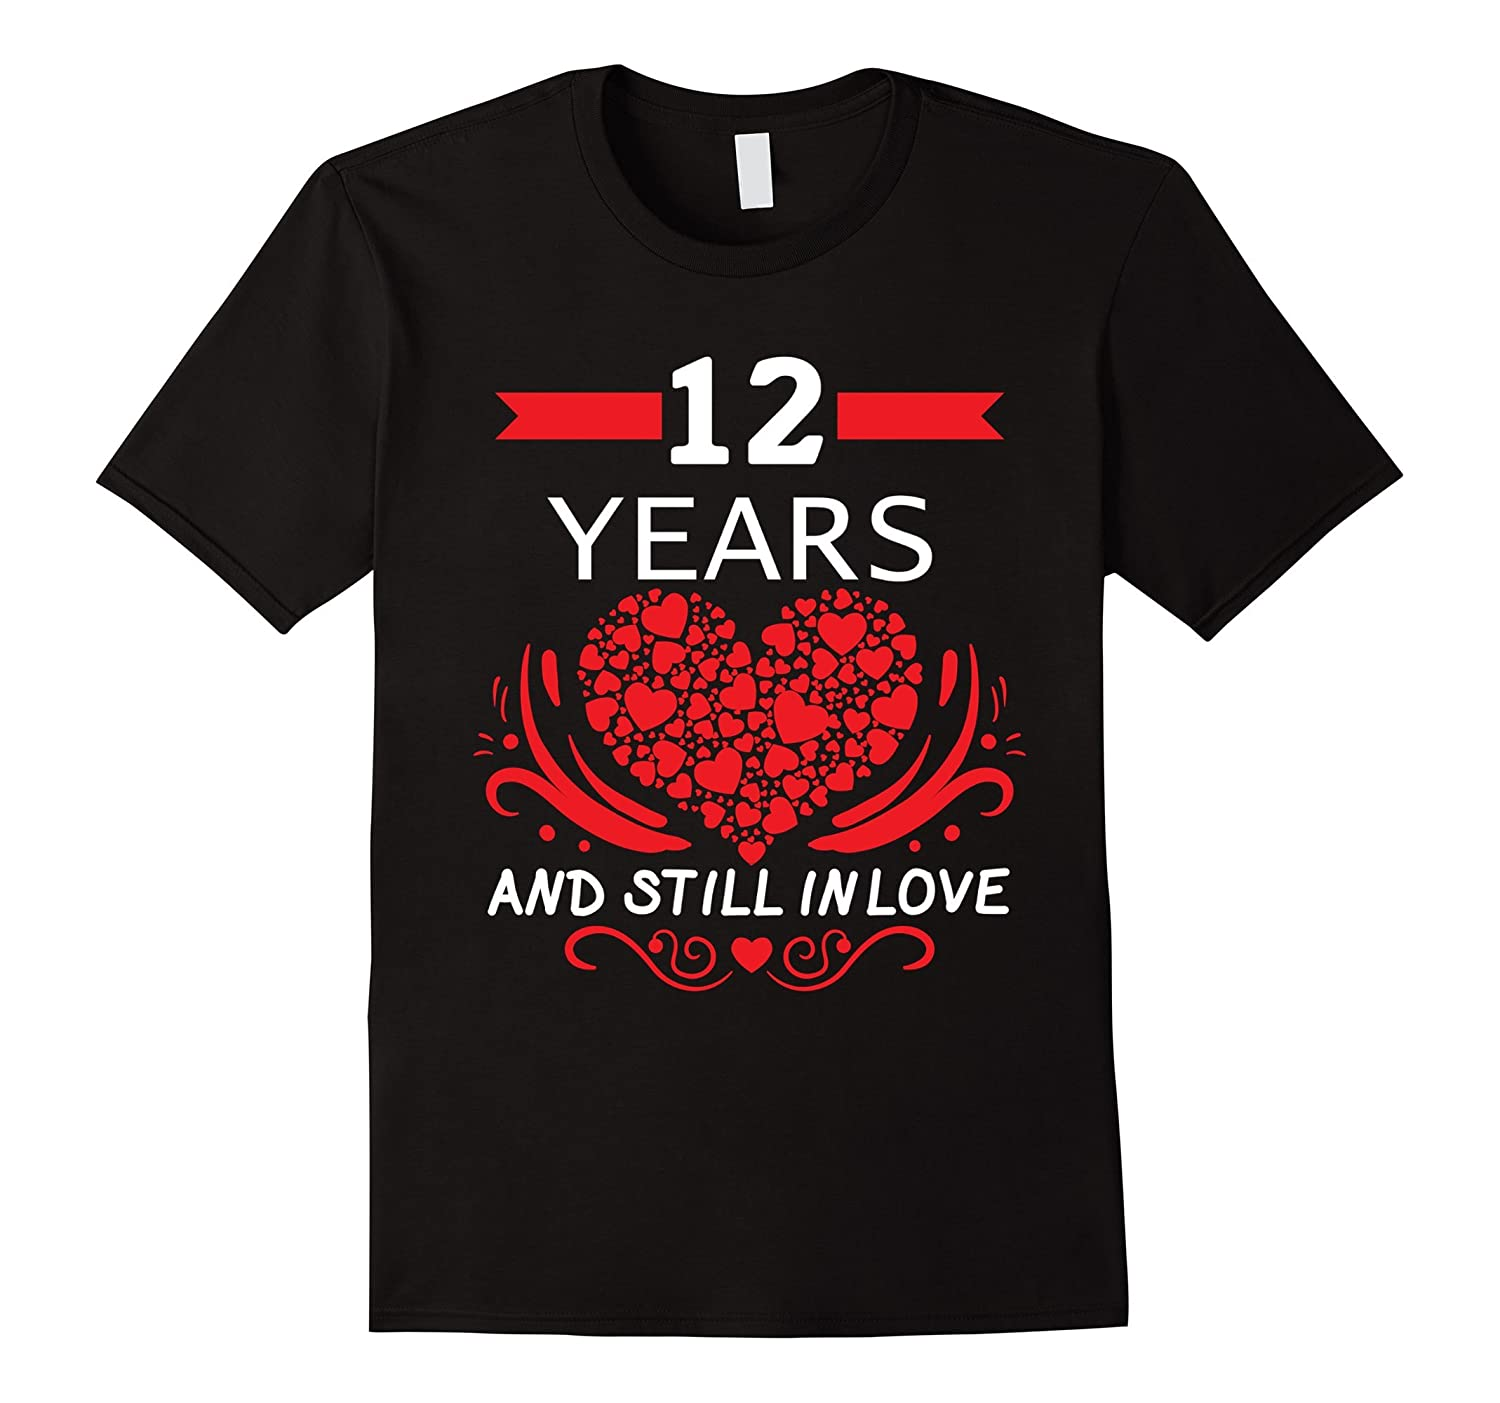 Wedding Anniversary Gifts 12 Years: 12th Wedding Anniversary Gifts 12 Year Shirt For Him And